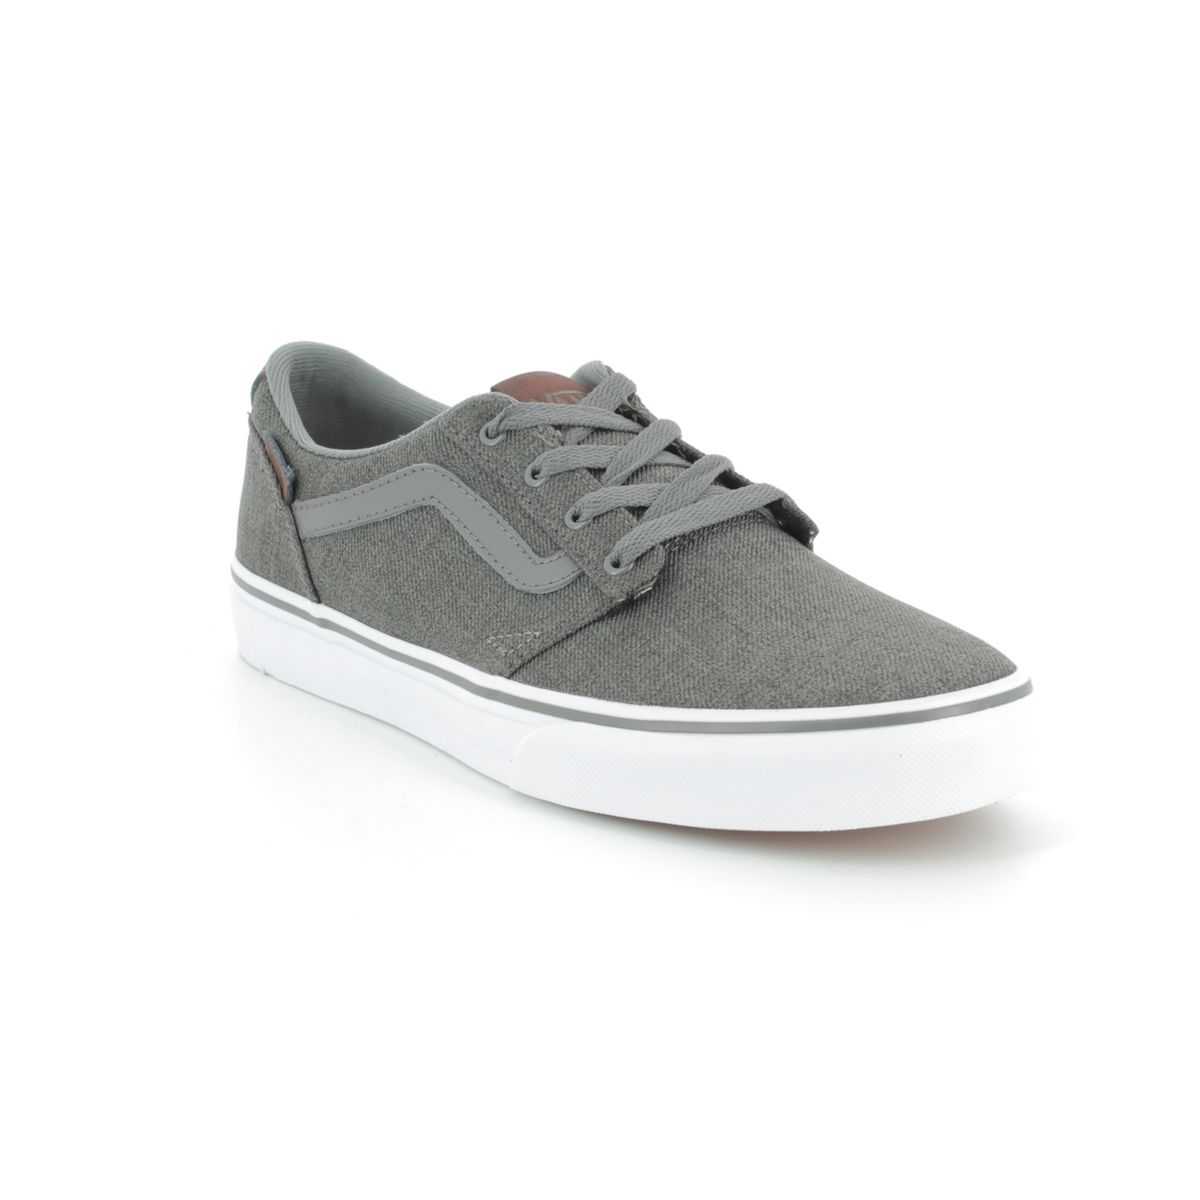 db5978672 Vans Trainers - Dark Grey - VA38J2Q2N CHAPMAN STRIPE